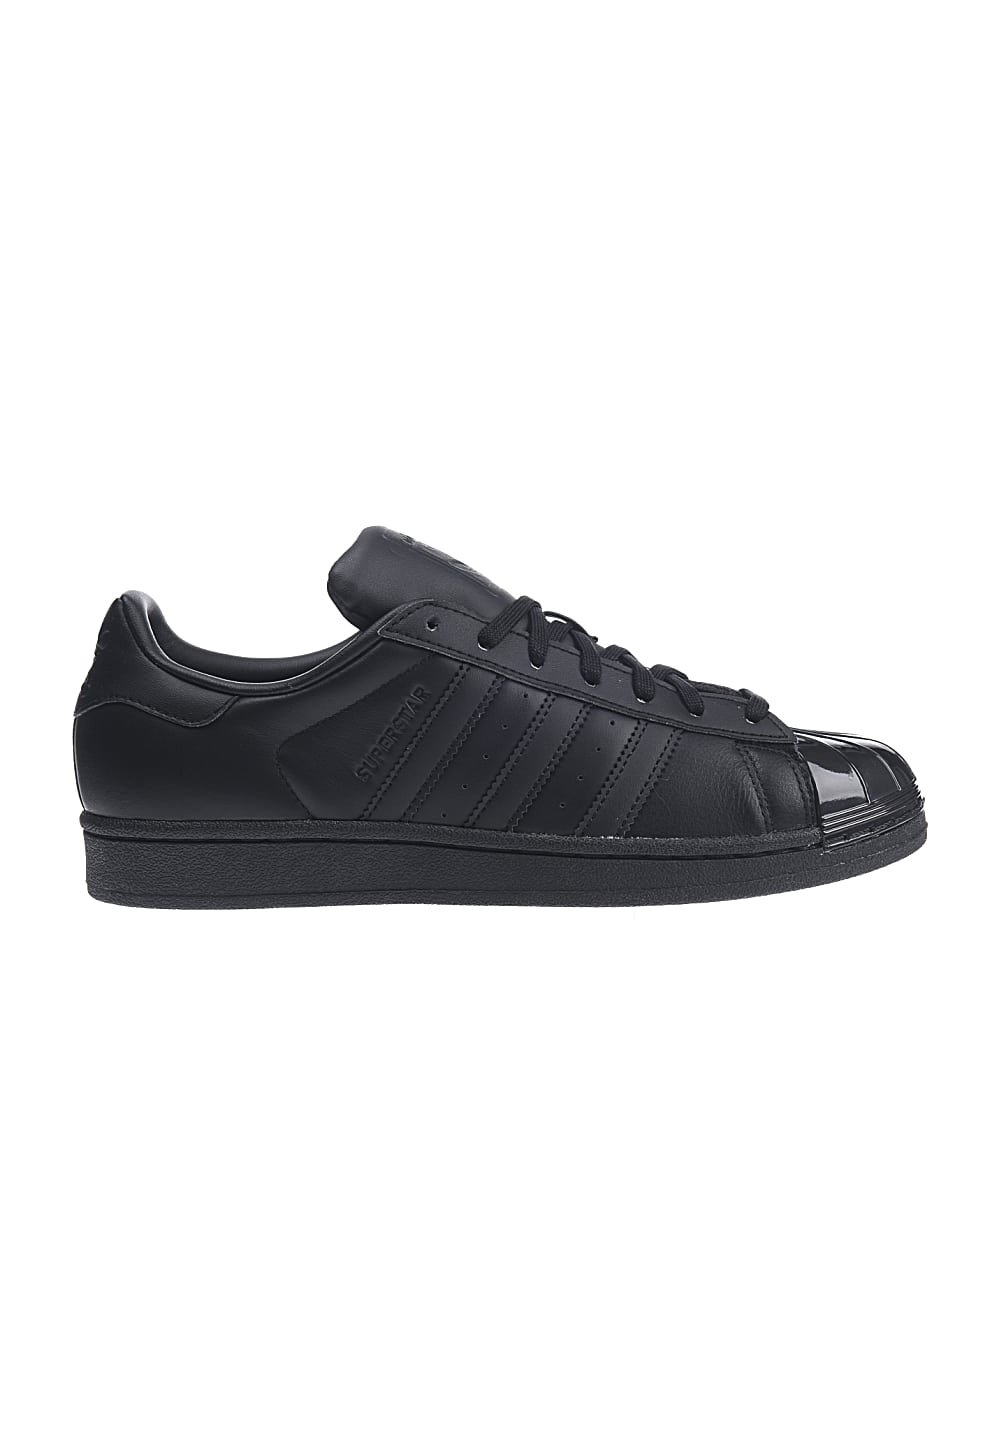 adidas superstar glossy to sneaker f r damen schwarz planet sports. Black Bedroom Furniture Sets. Home Design Ideas